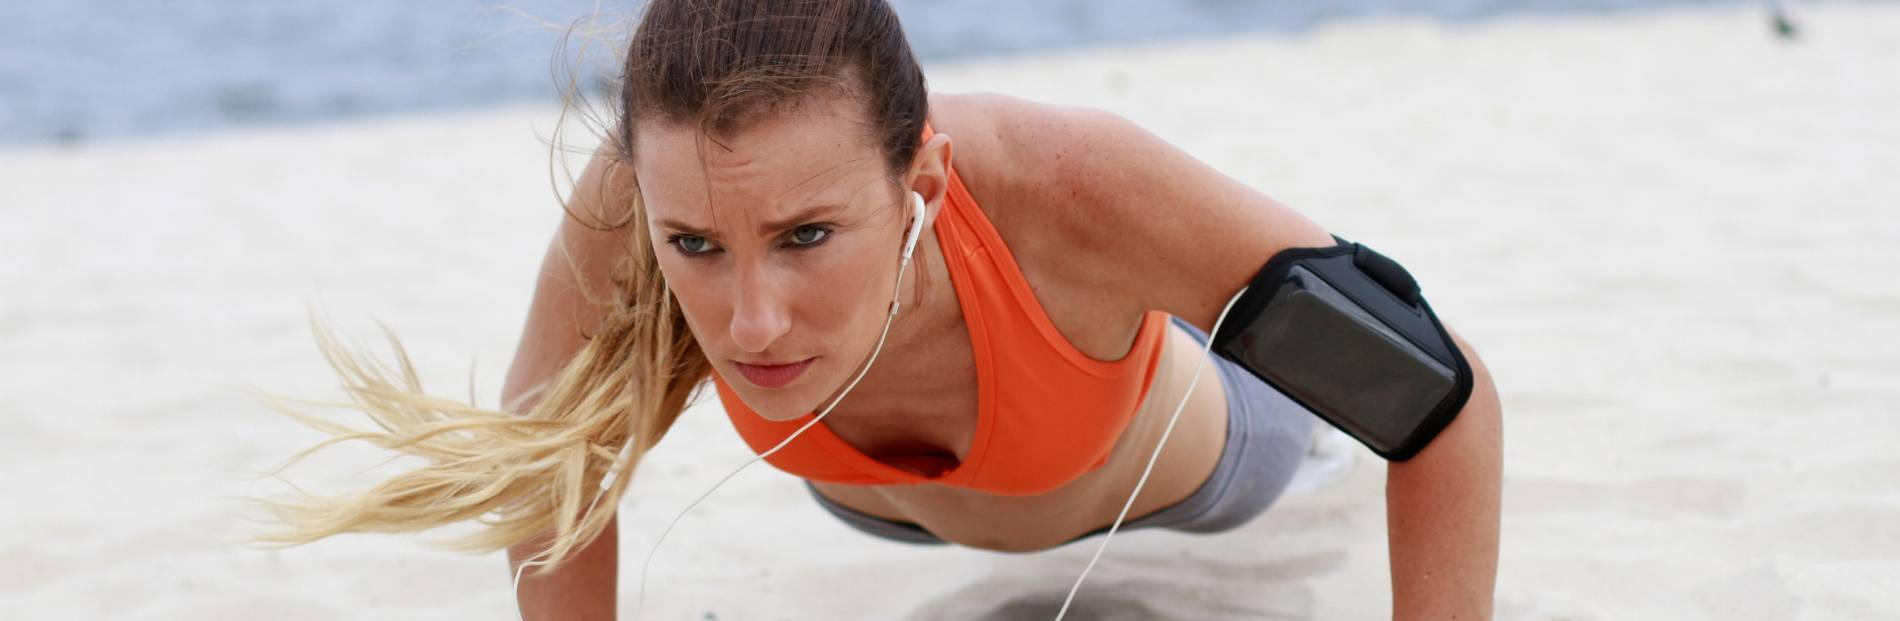 exercise during ivf treatment